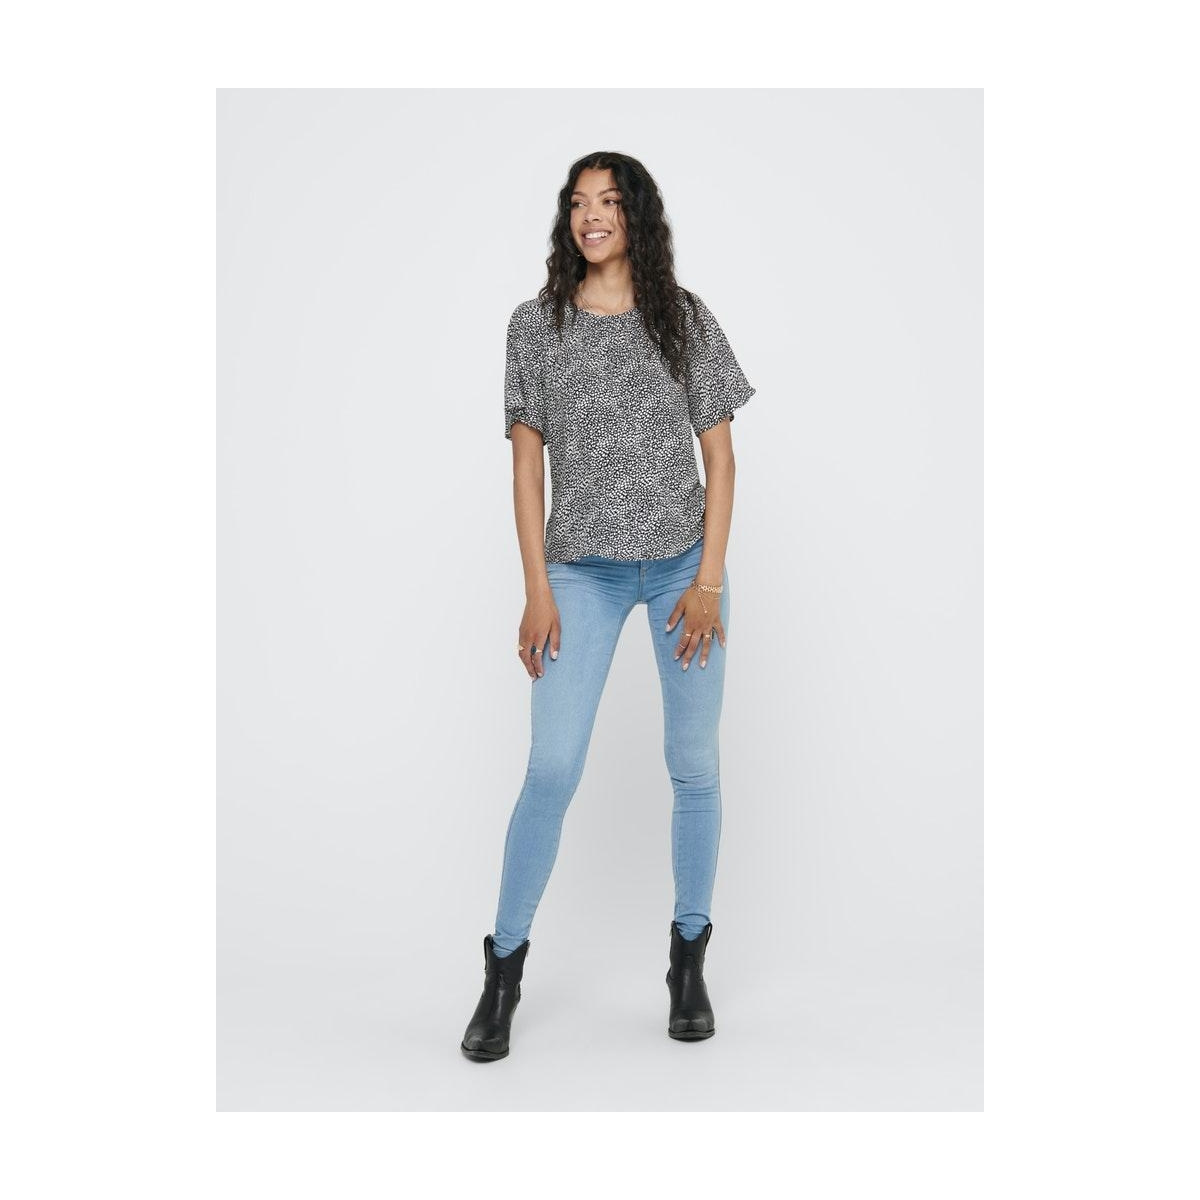 jdypearl s/s top wvn 15209000 jacqueline de yong t-shirt black/cloud dancer